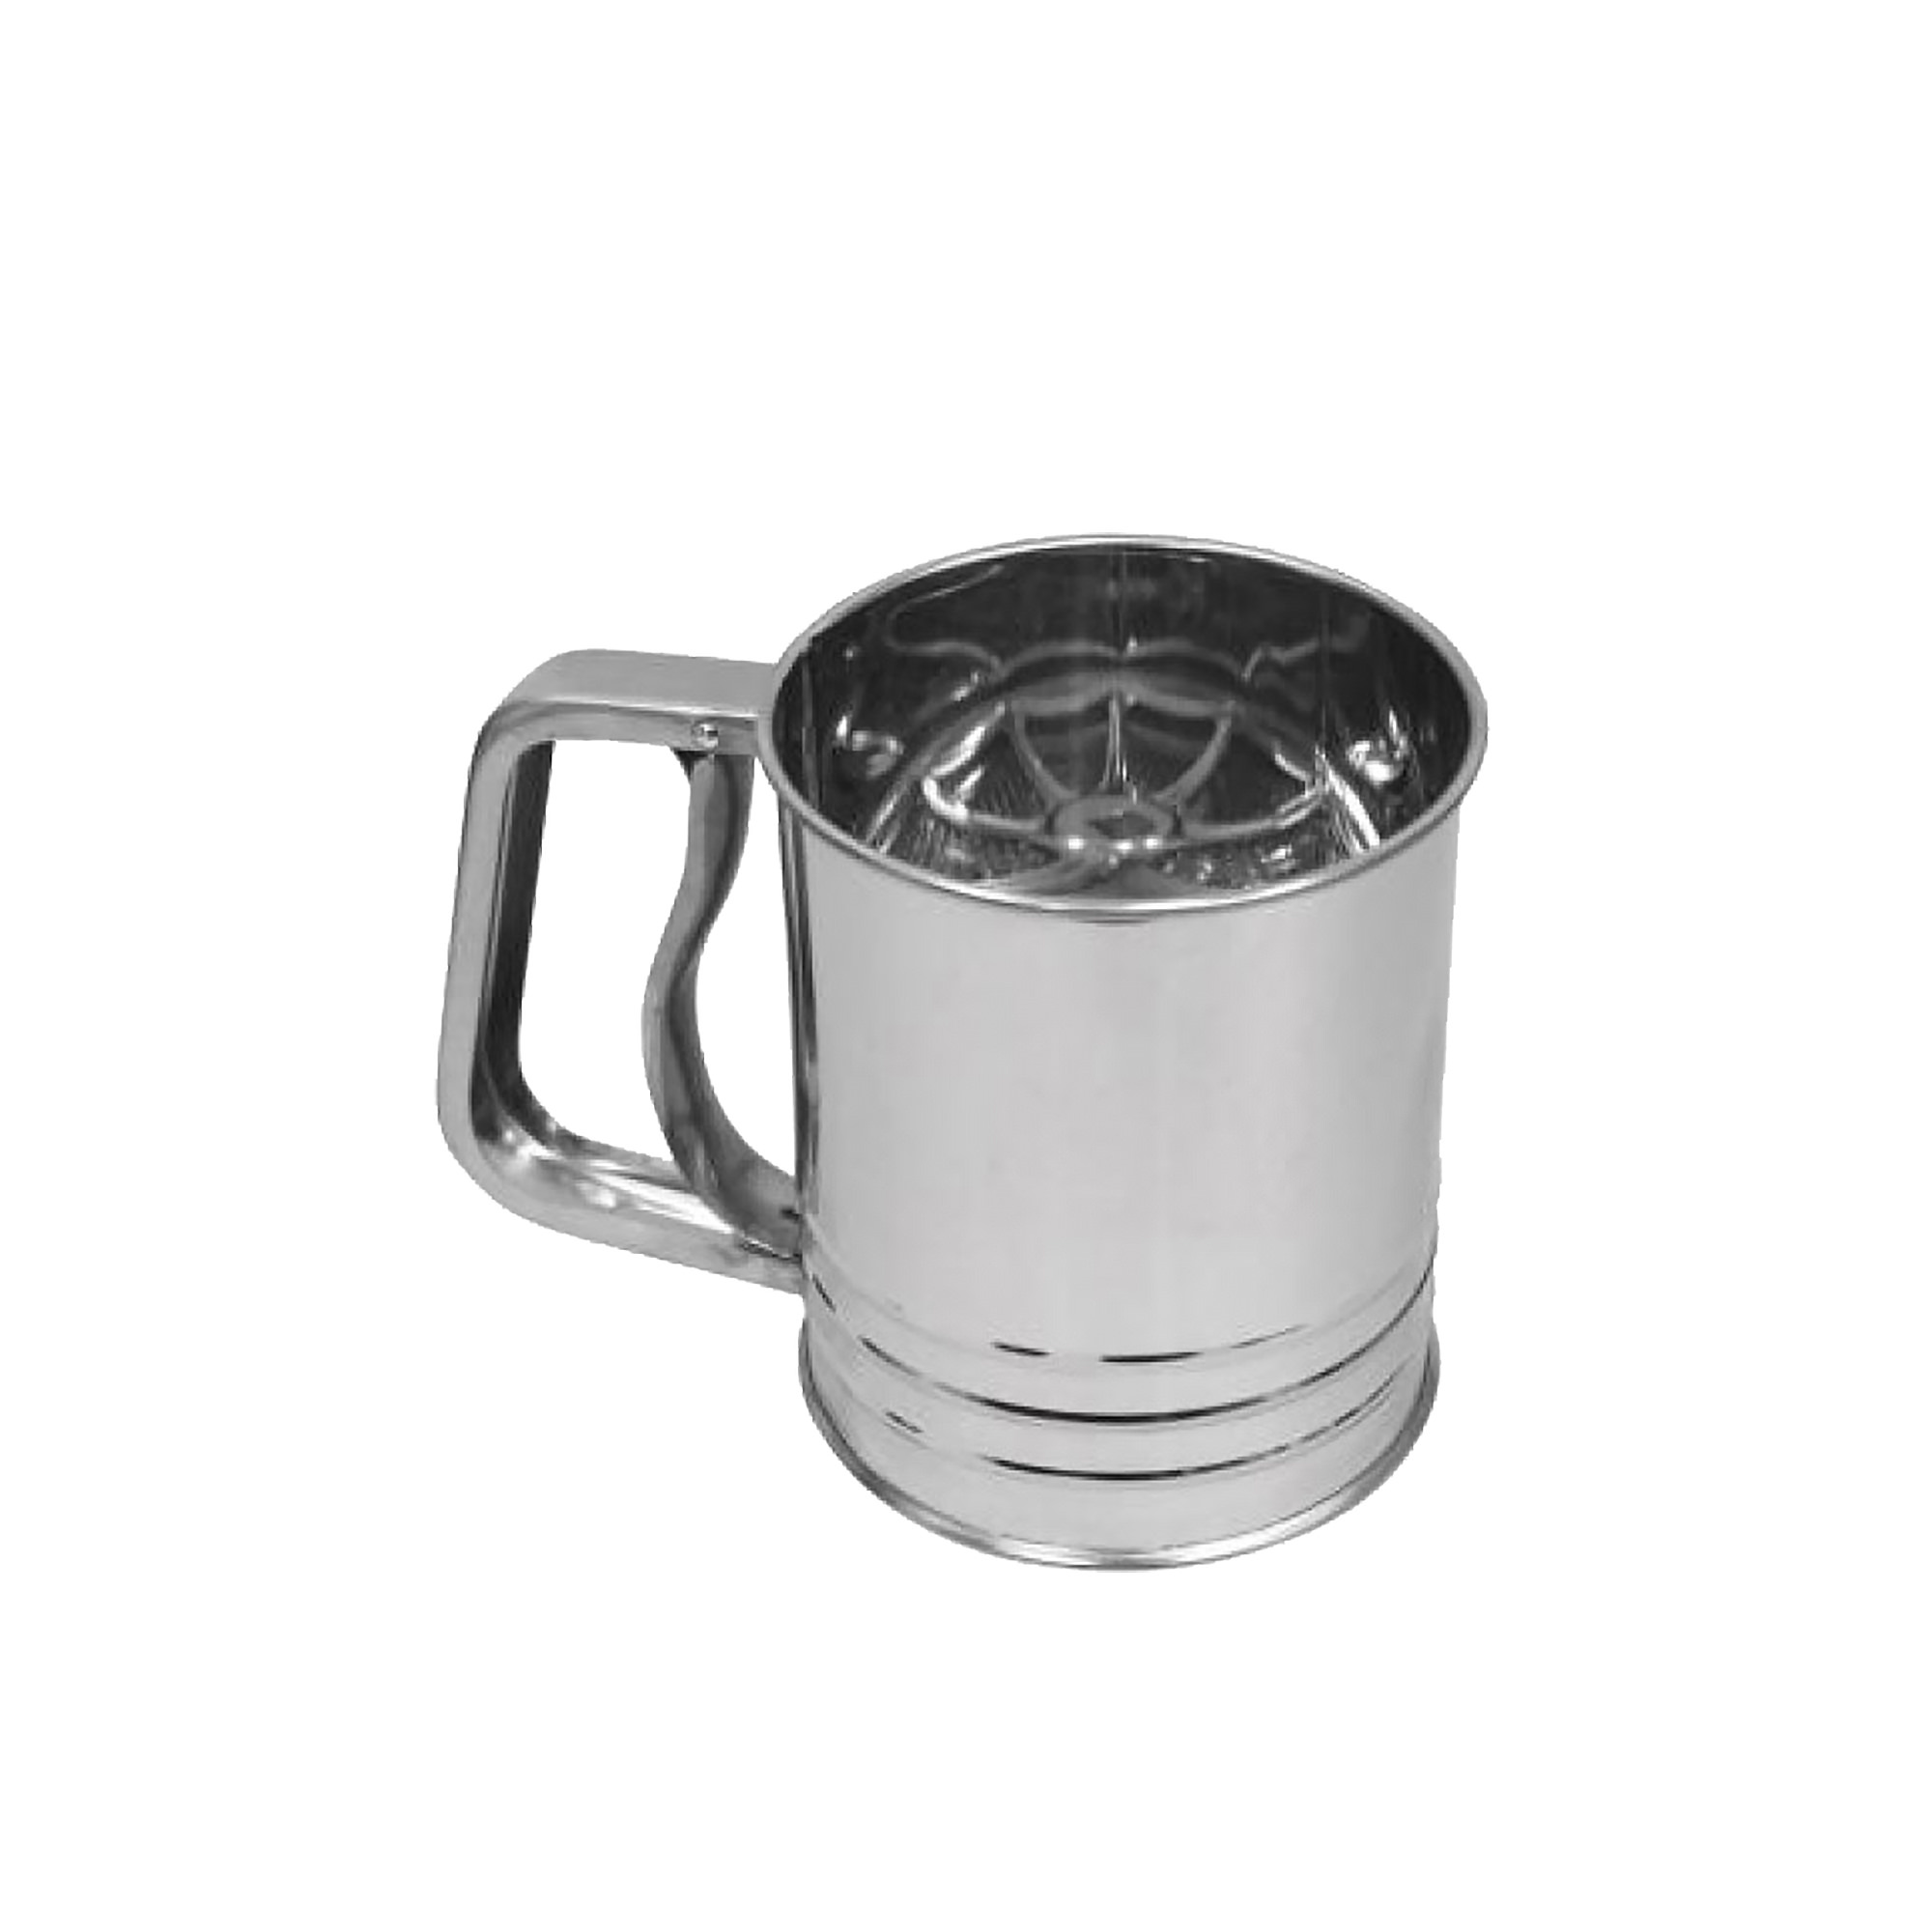 Loyal Flour Sifter 3 Cups